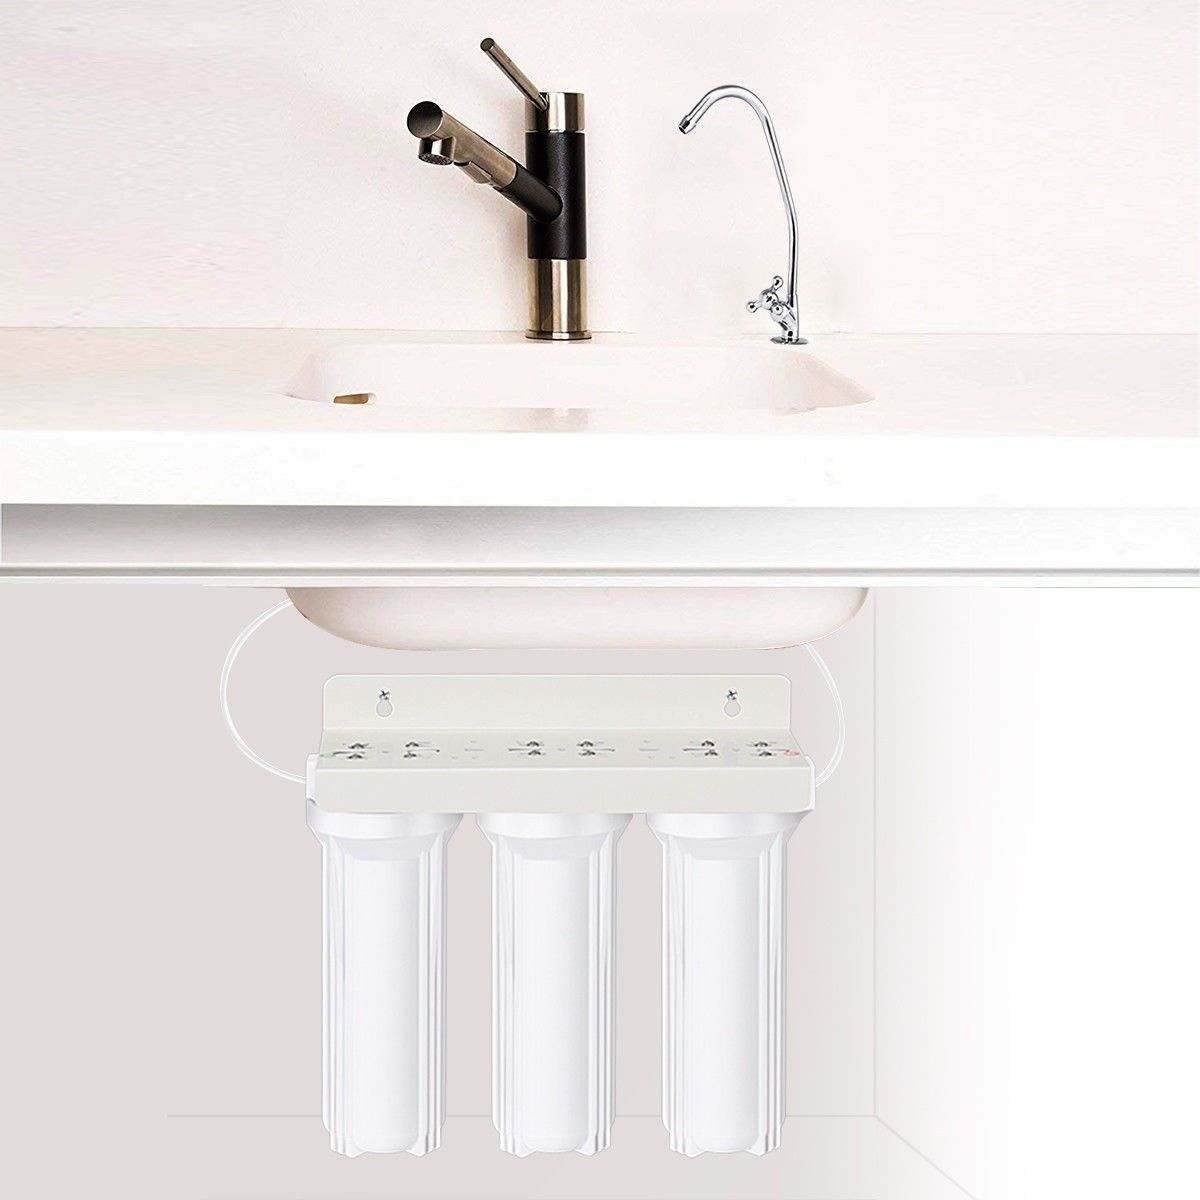 3 Stage Under Sink Water Filter System With Chromed Faucet Under